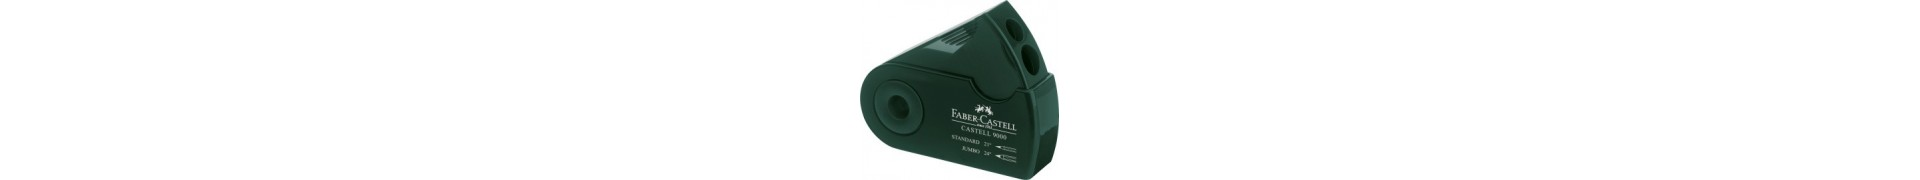 Taille-crayon FABER & CASTELL 9000